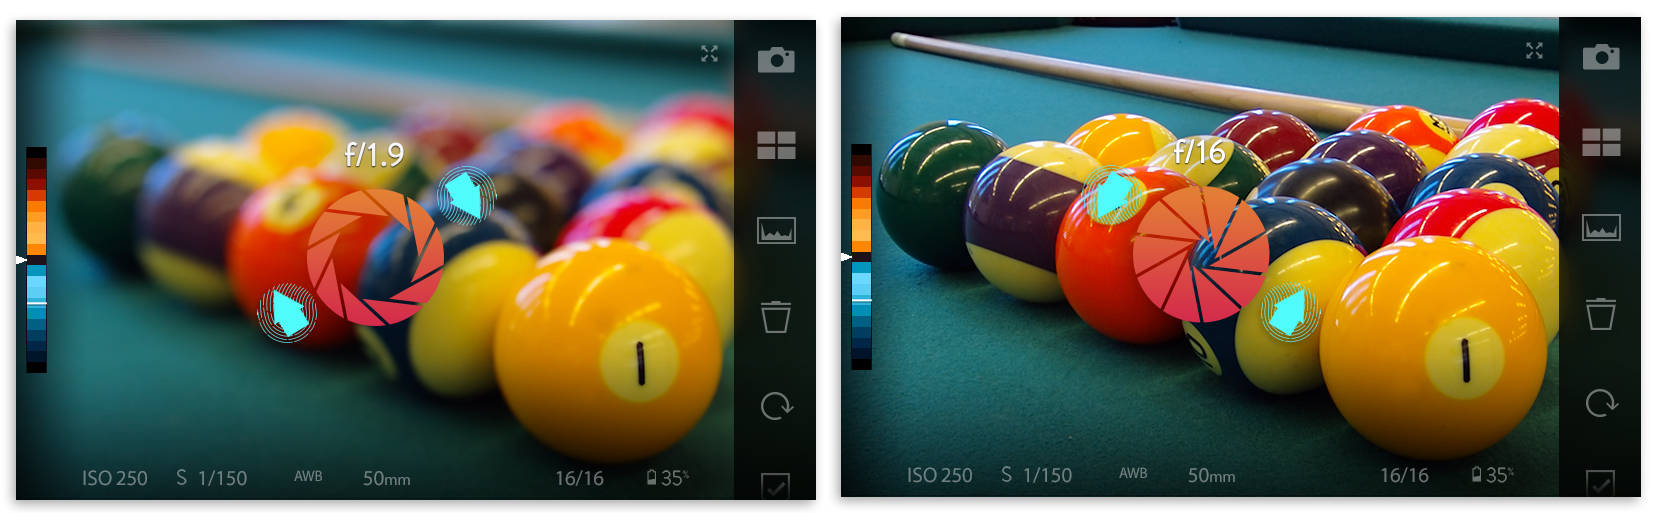 blogvirtualaperturef1-9f16poolballs-copy.jpg